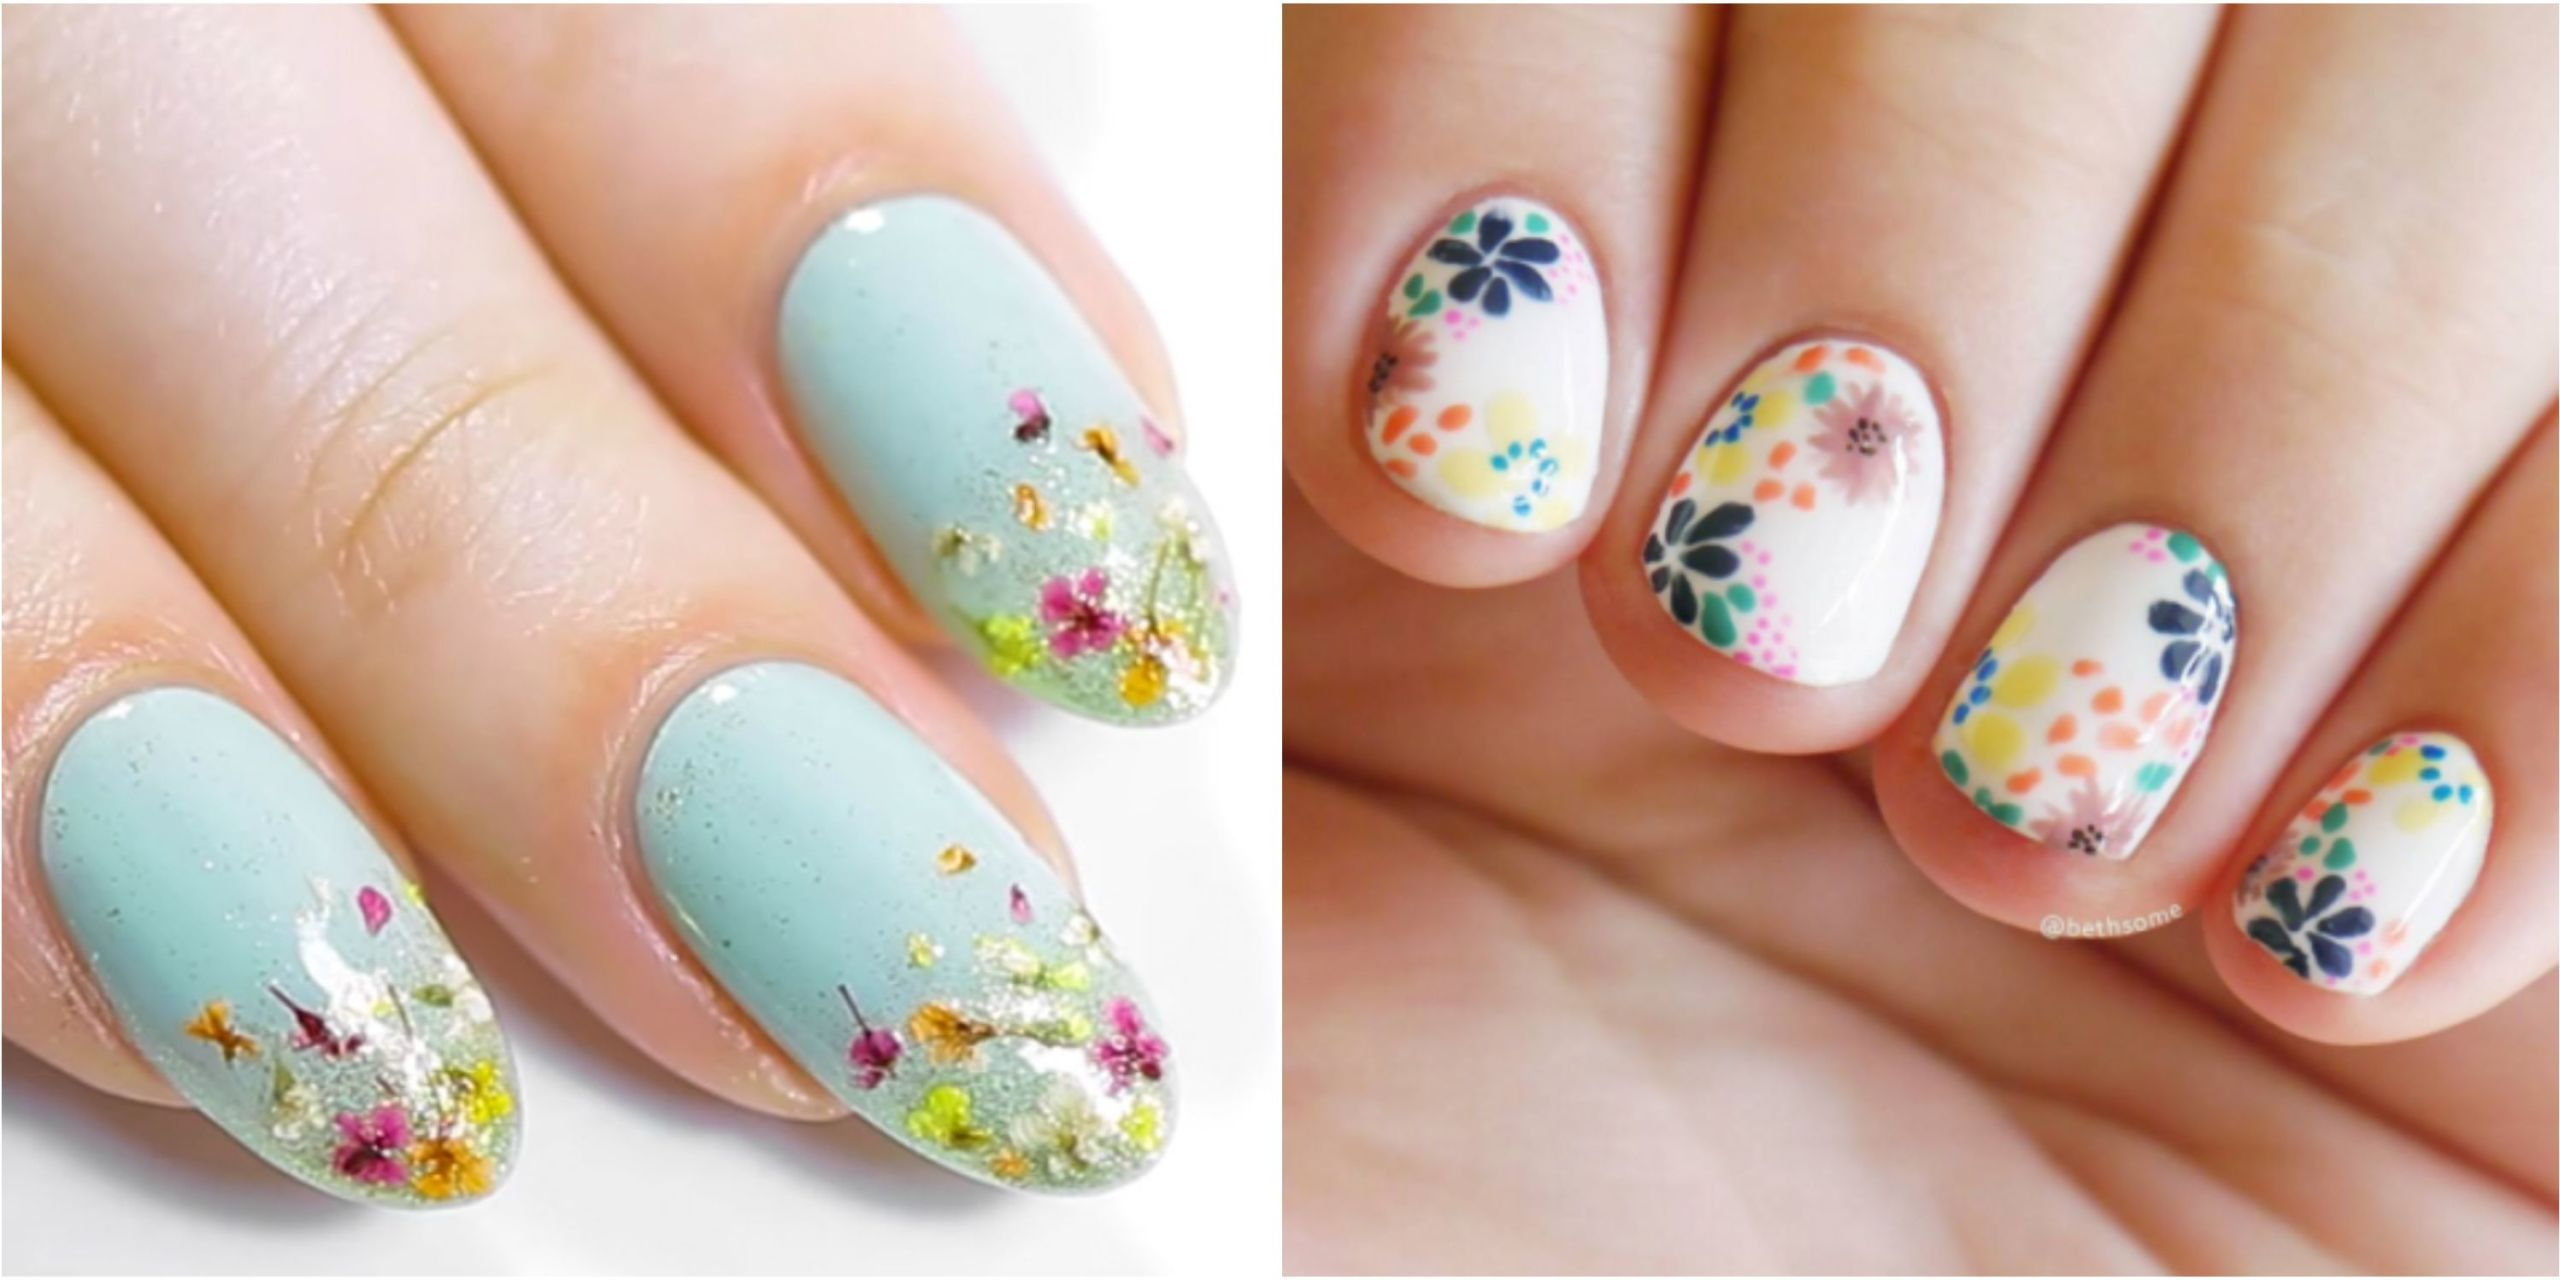 Elegant Because Everybody Loves Flowers, These Gorgeous Nail Art Designs Are  Perennial. Whether Done Freehand With A Brush Or With The Help Of Stamps,  ...